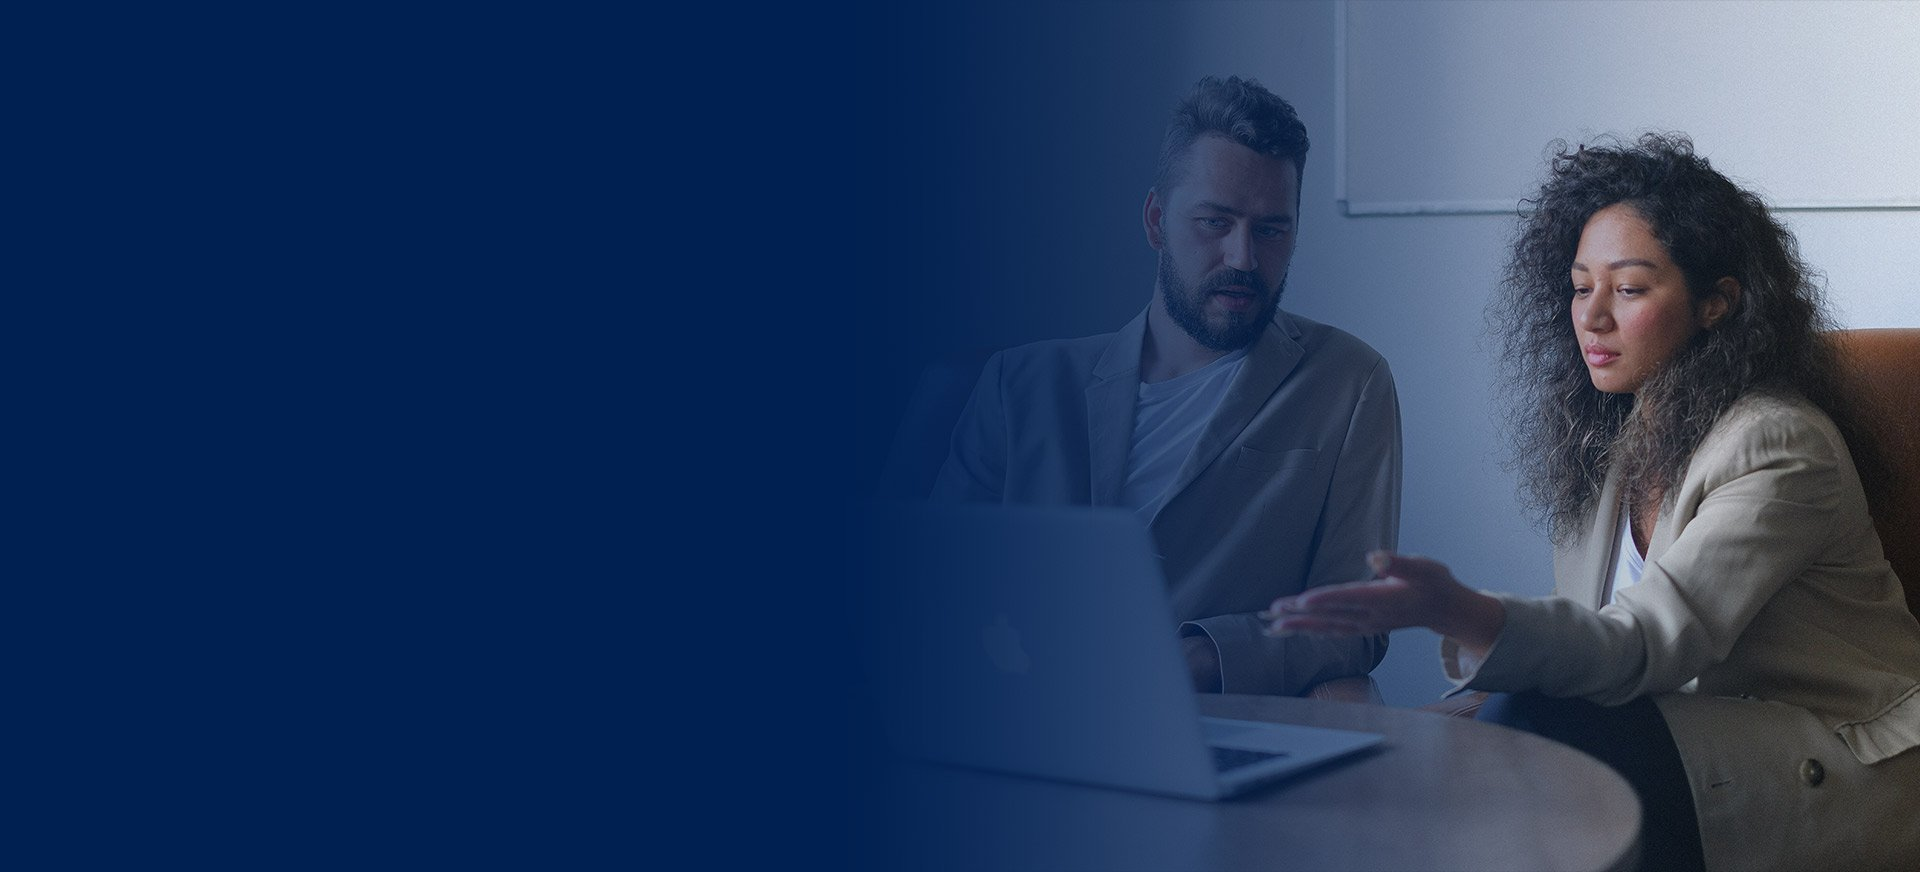 Microsoft Dynamics 365 Consulting Services